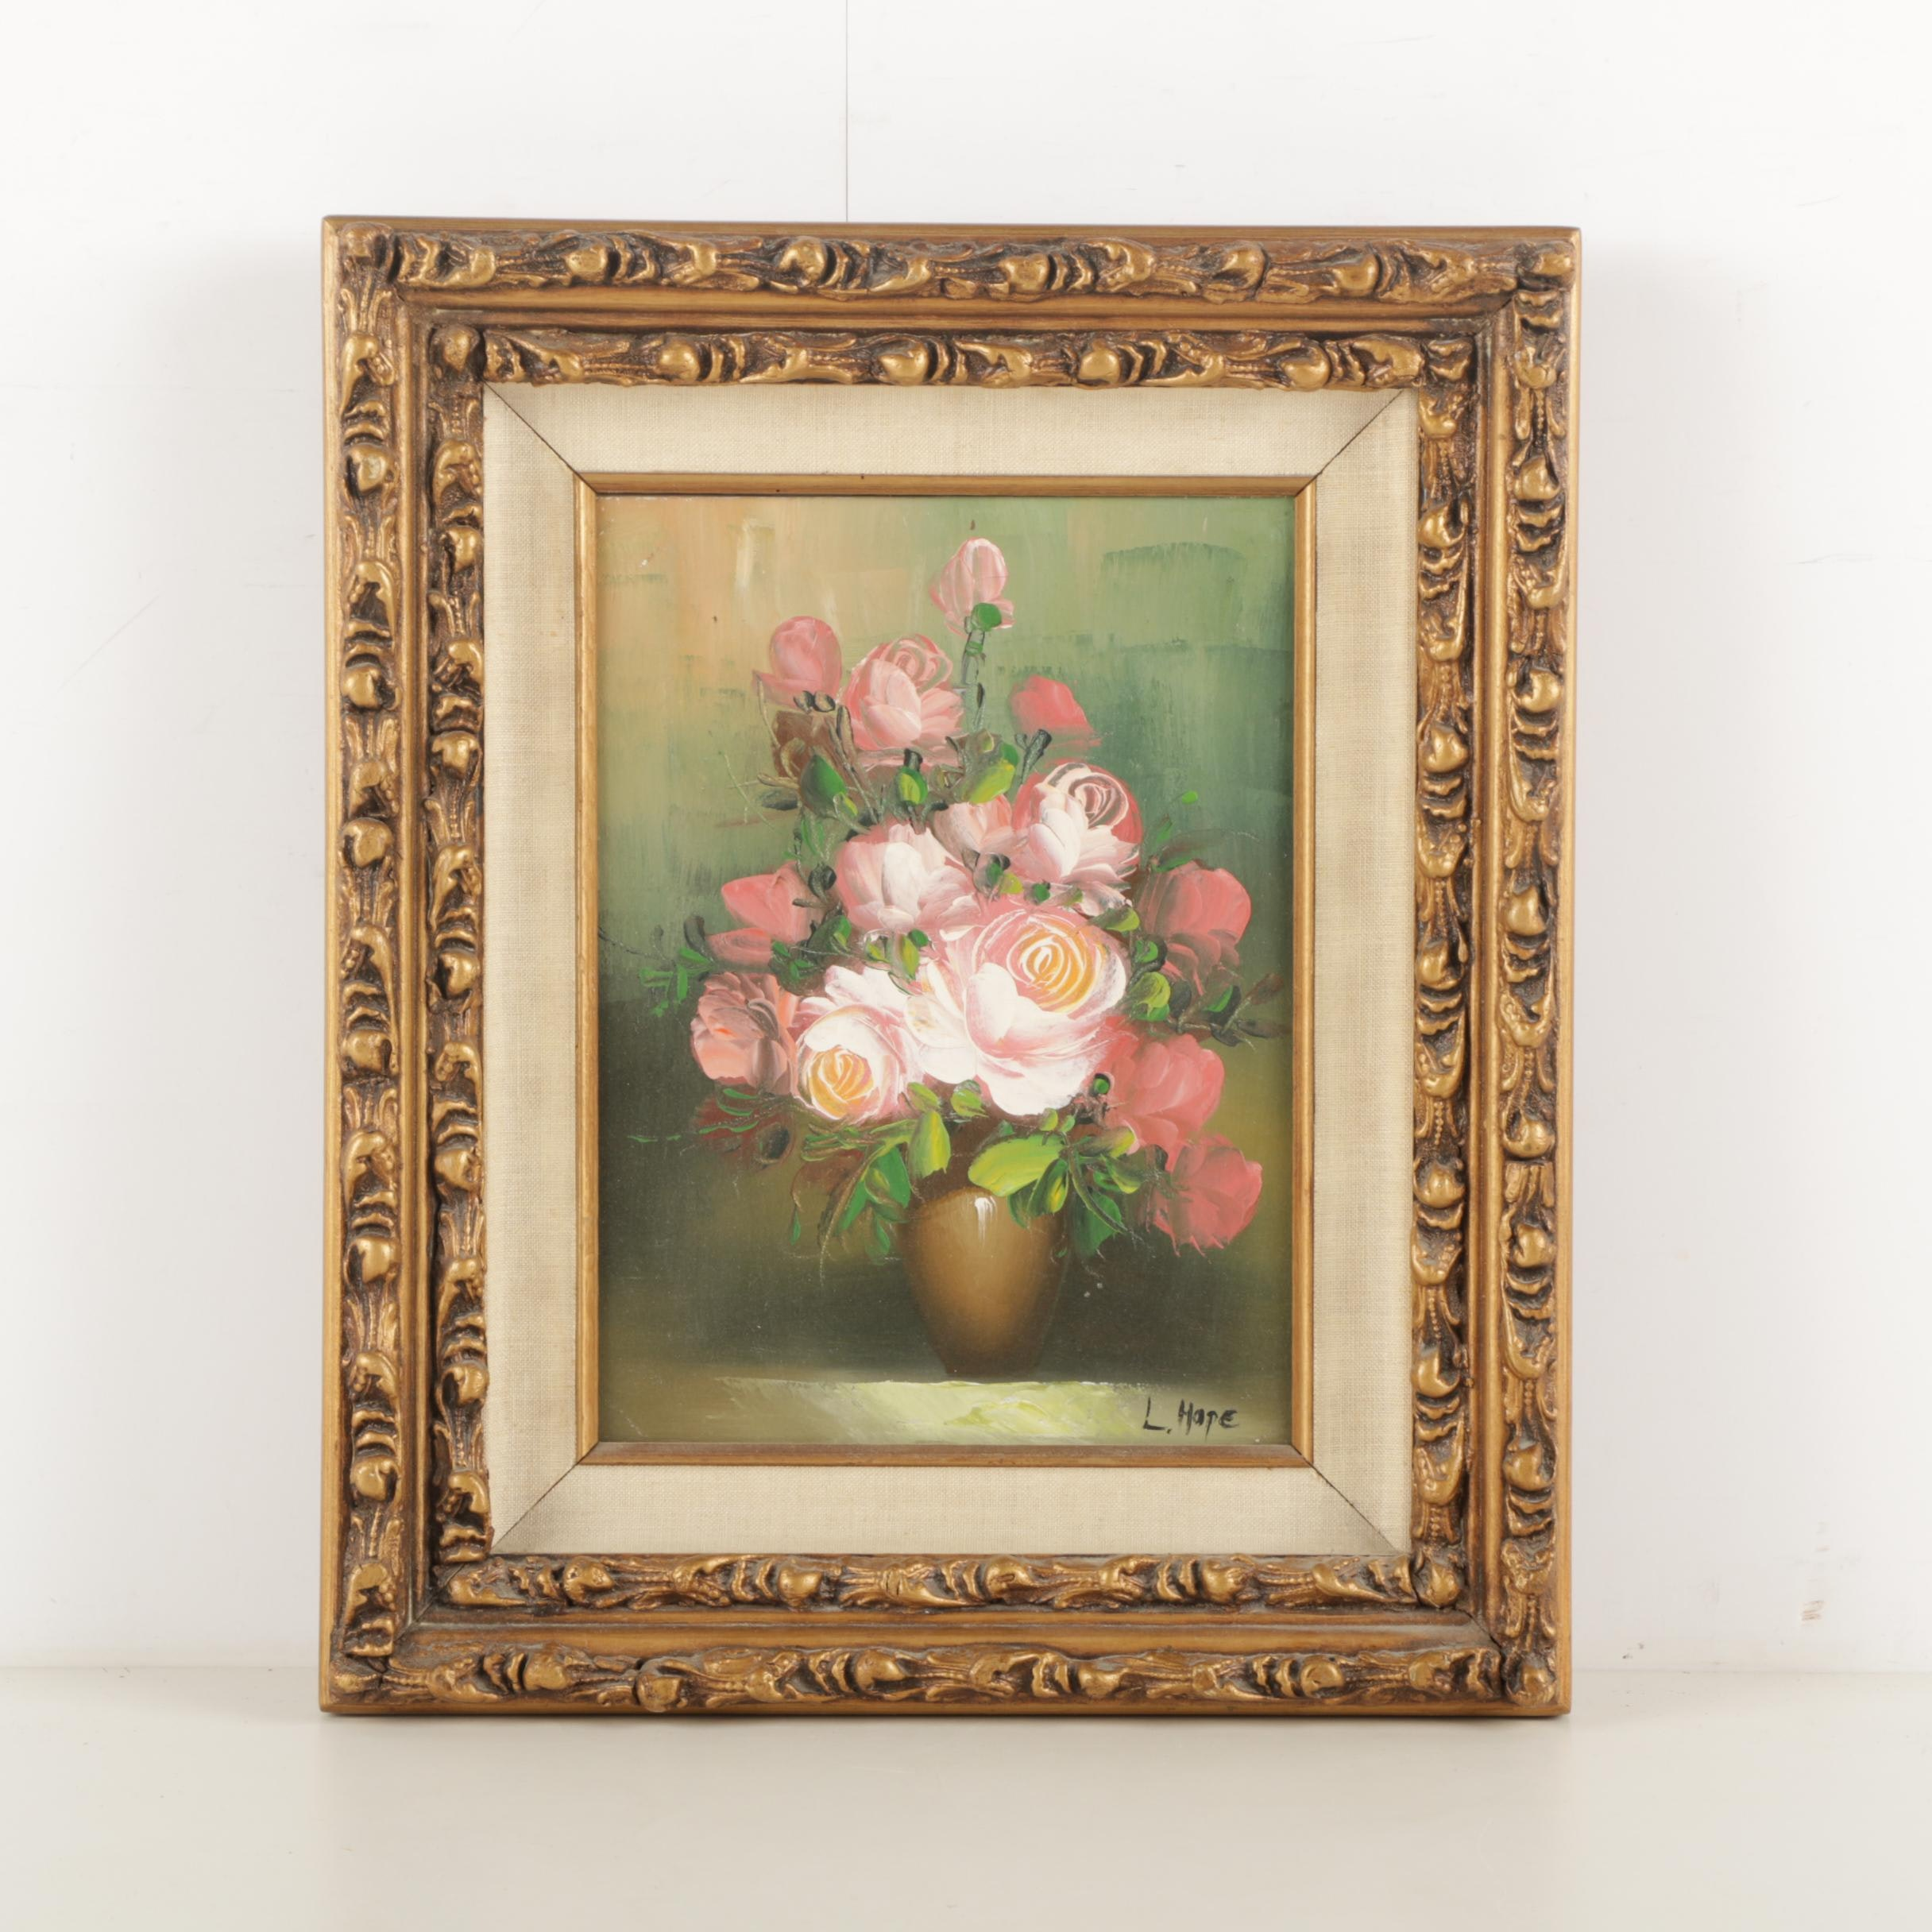 Laurence Hope Oil Painting on Canvas of Pink Roses